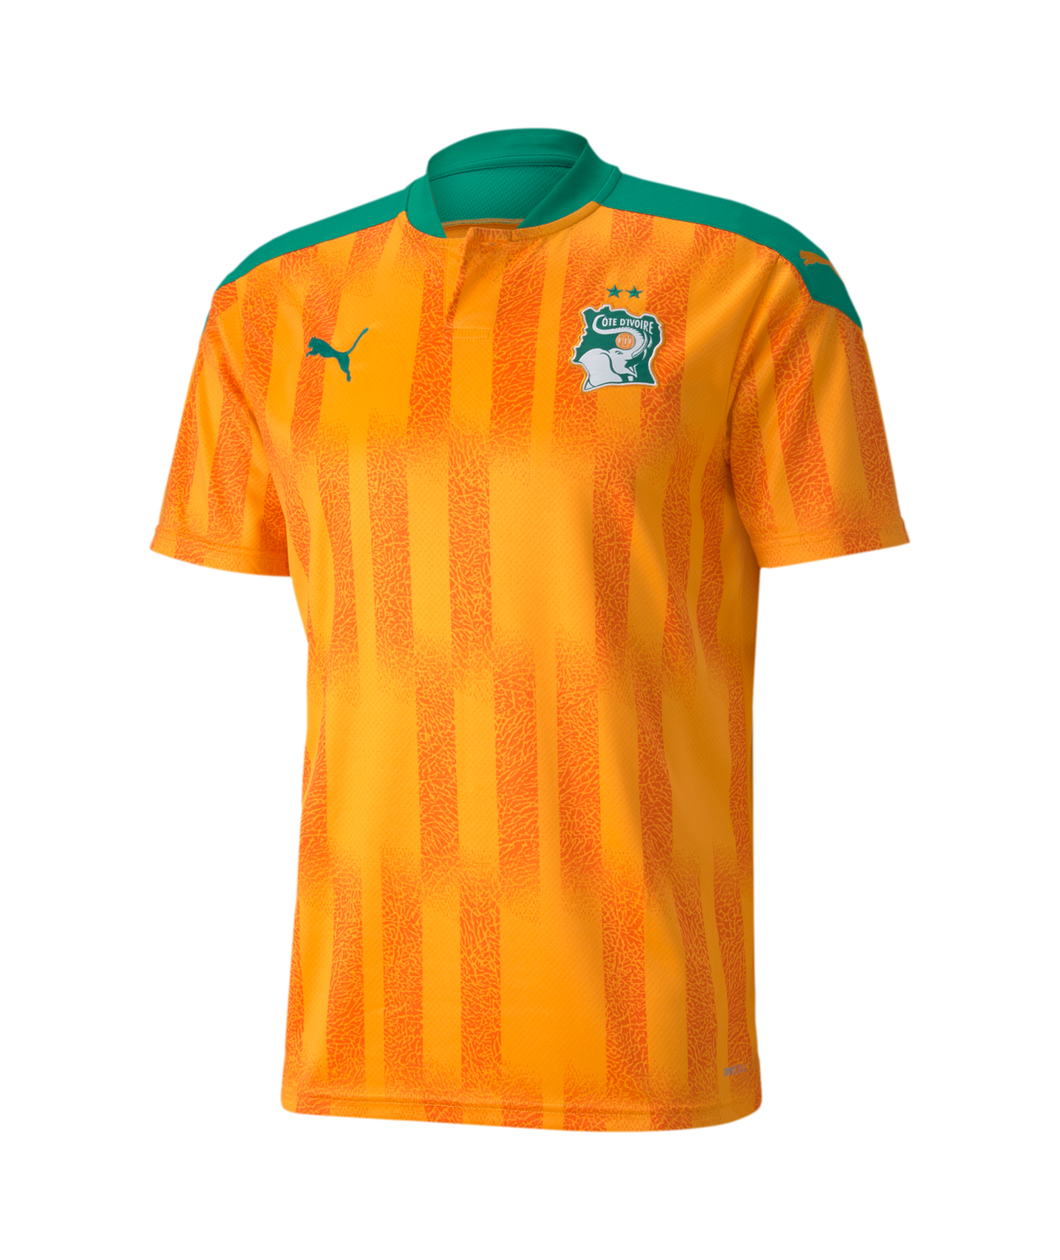 Puma Men's Ivory Coast Home Jersey 2020-21 FLAME ORANGE-PEPPER GREEN 75670701